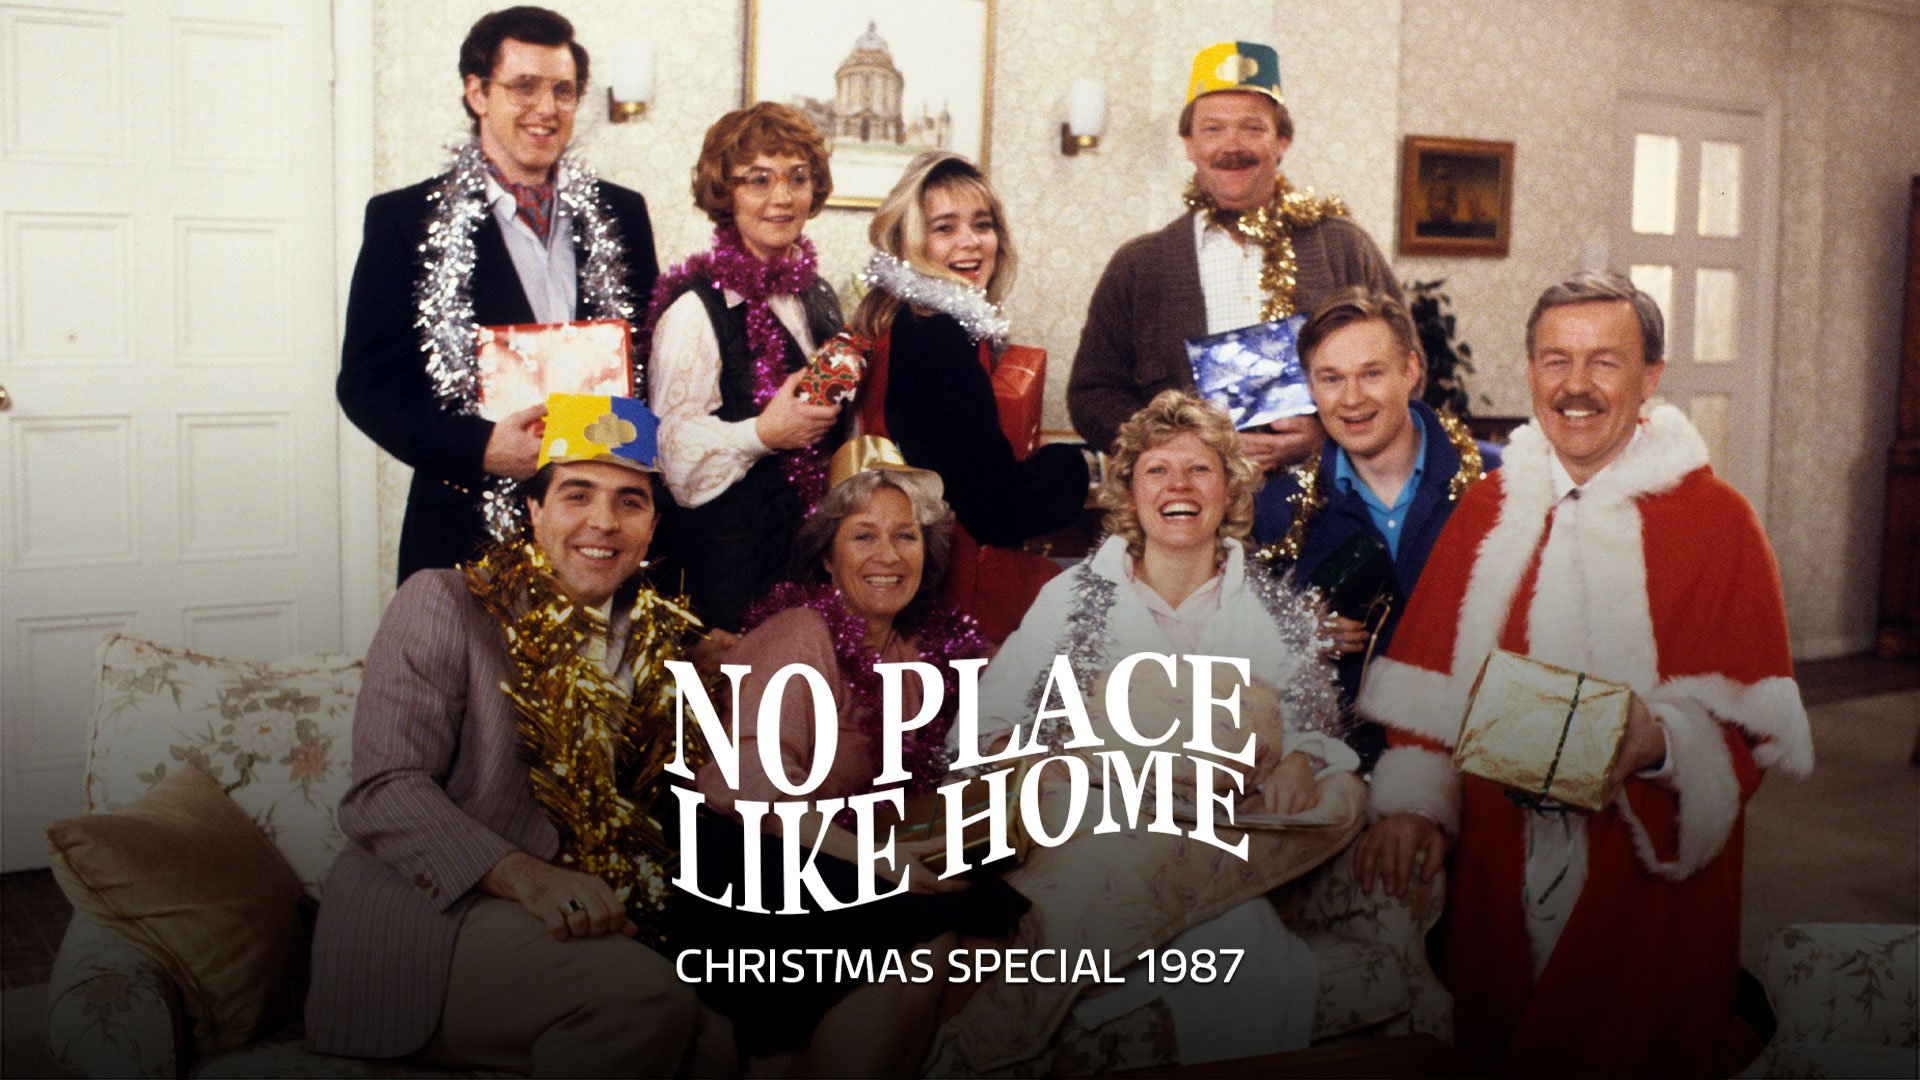 No Place Like Home Christmas Special 1987 on BritBox UK